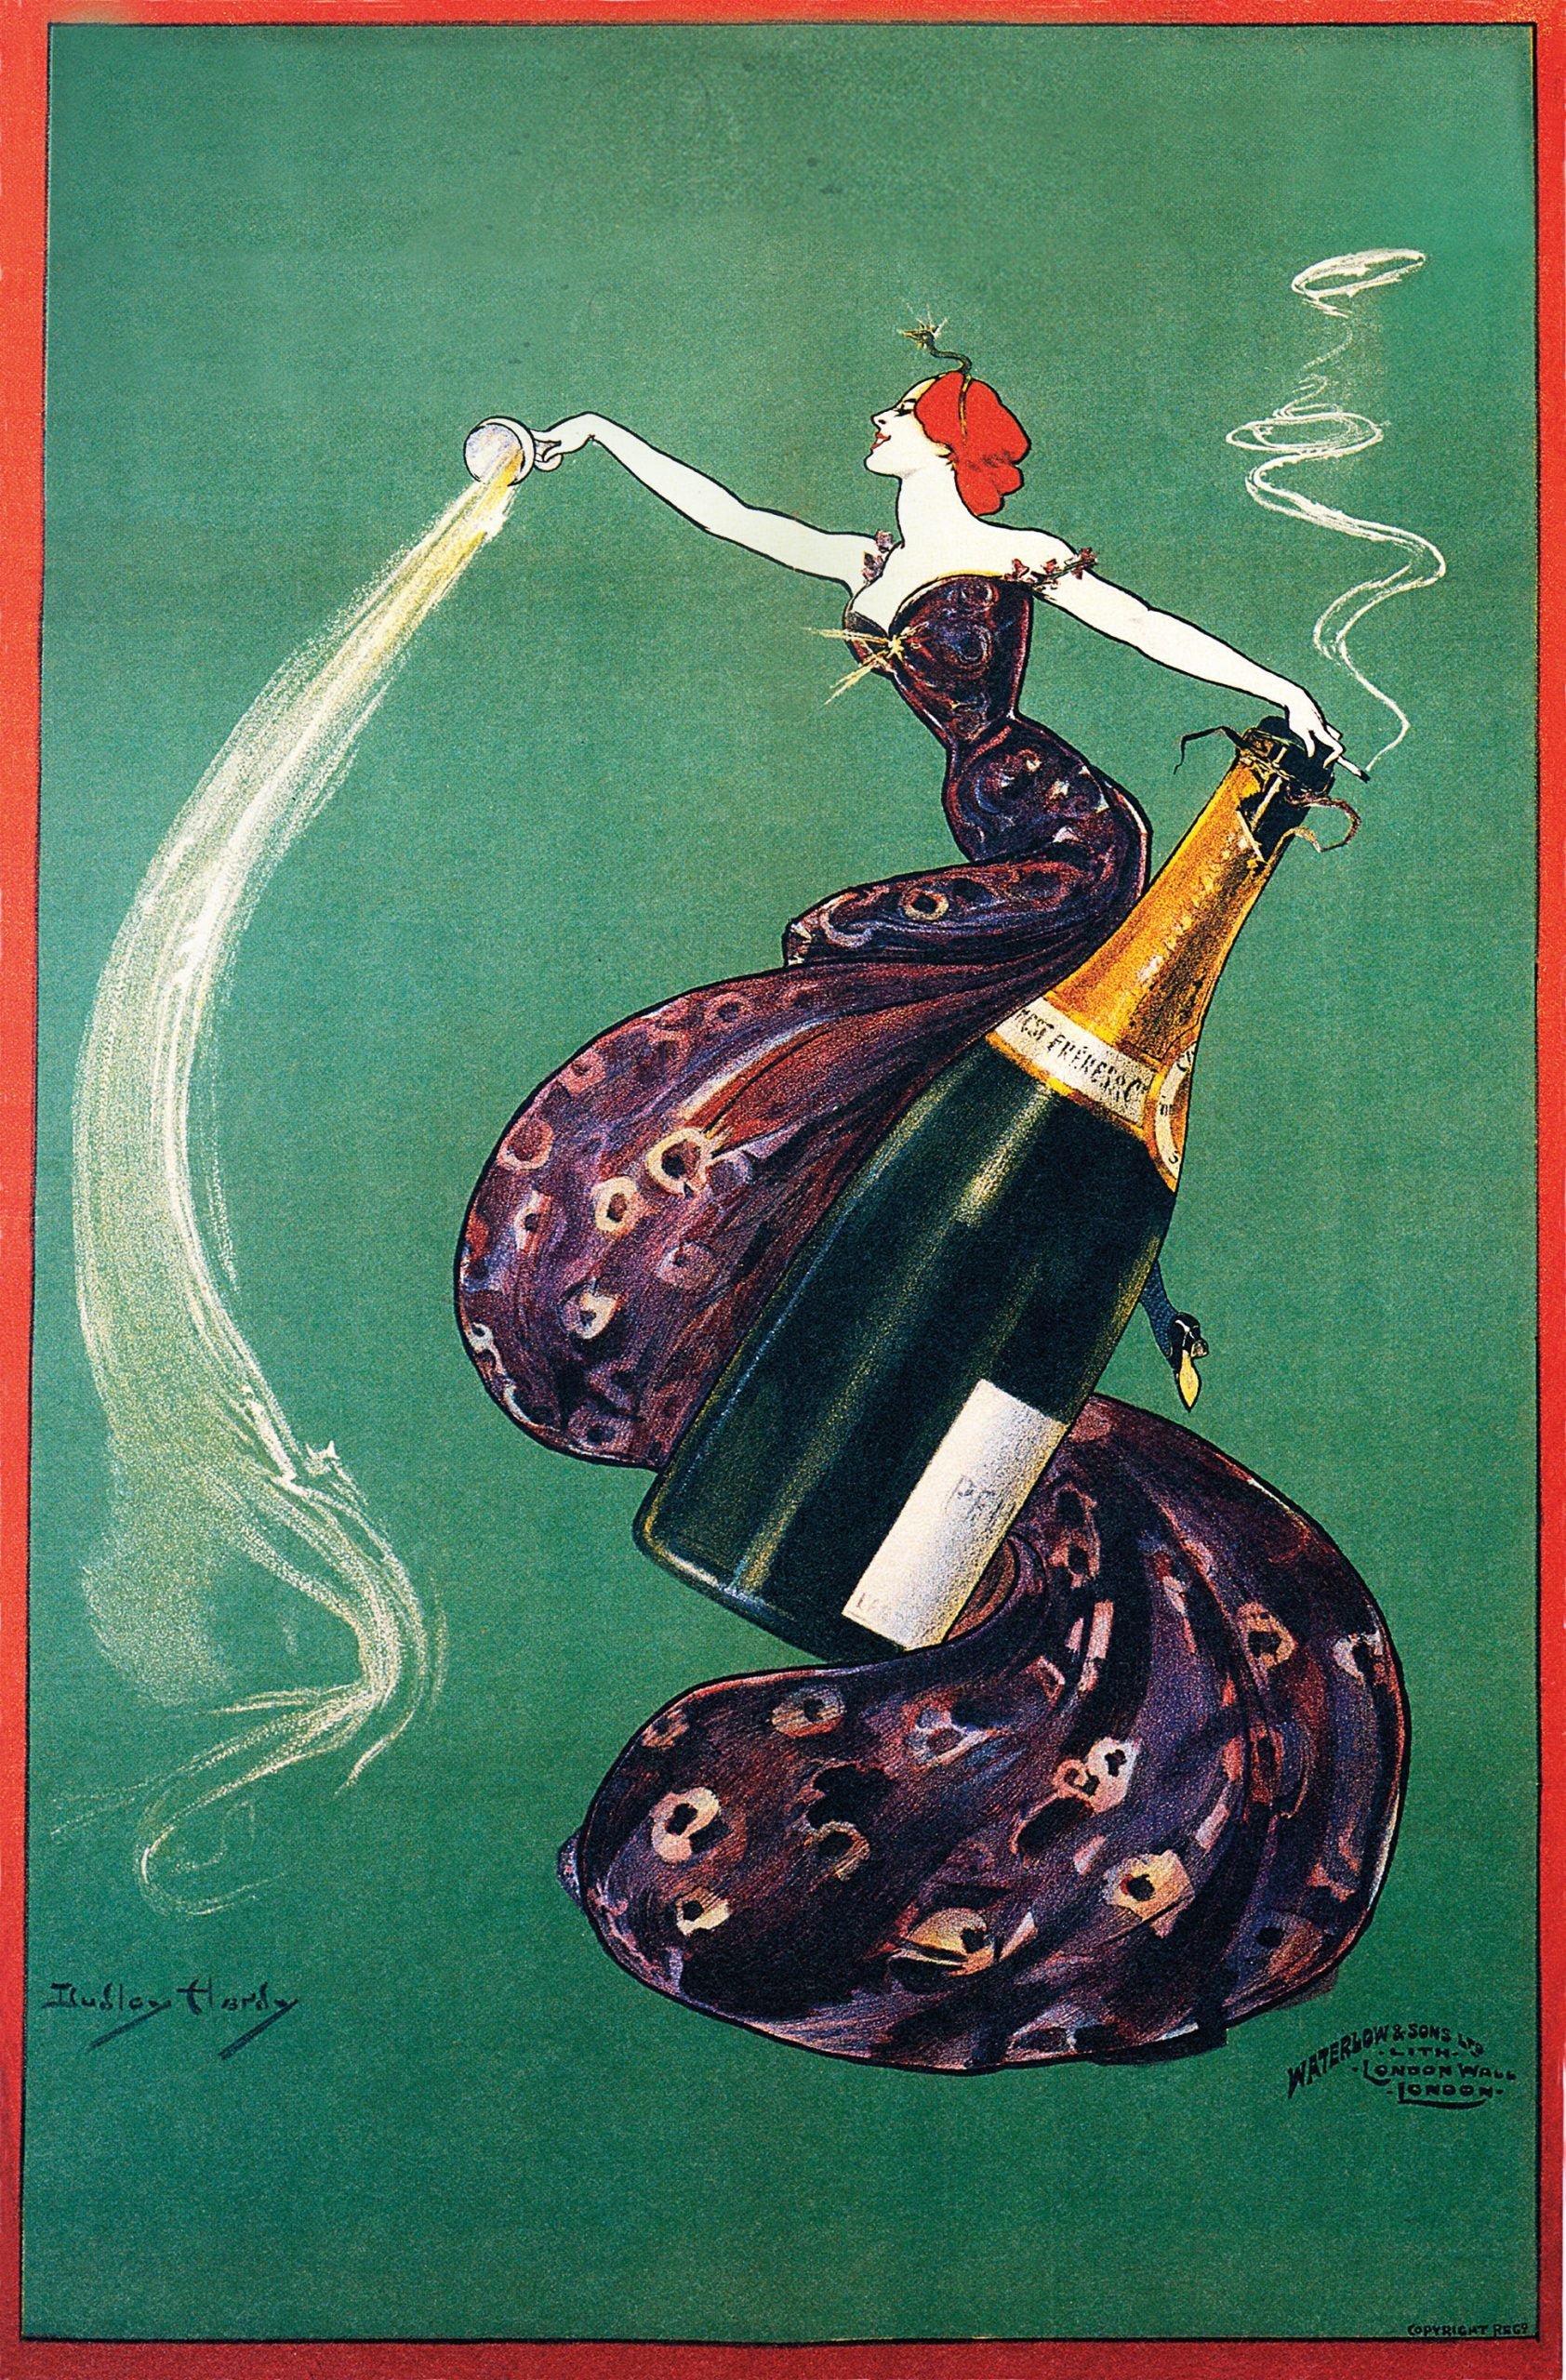 I finally understand the importance of serendipity – something Champagne makers knew all along